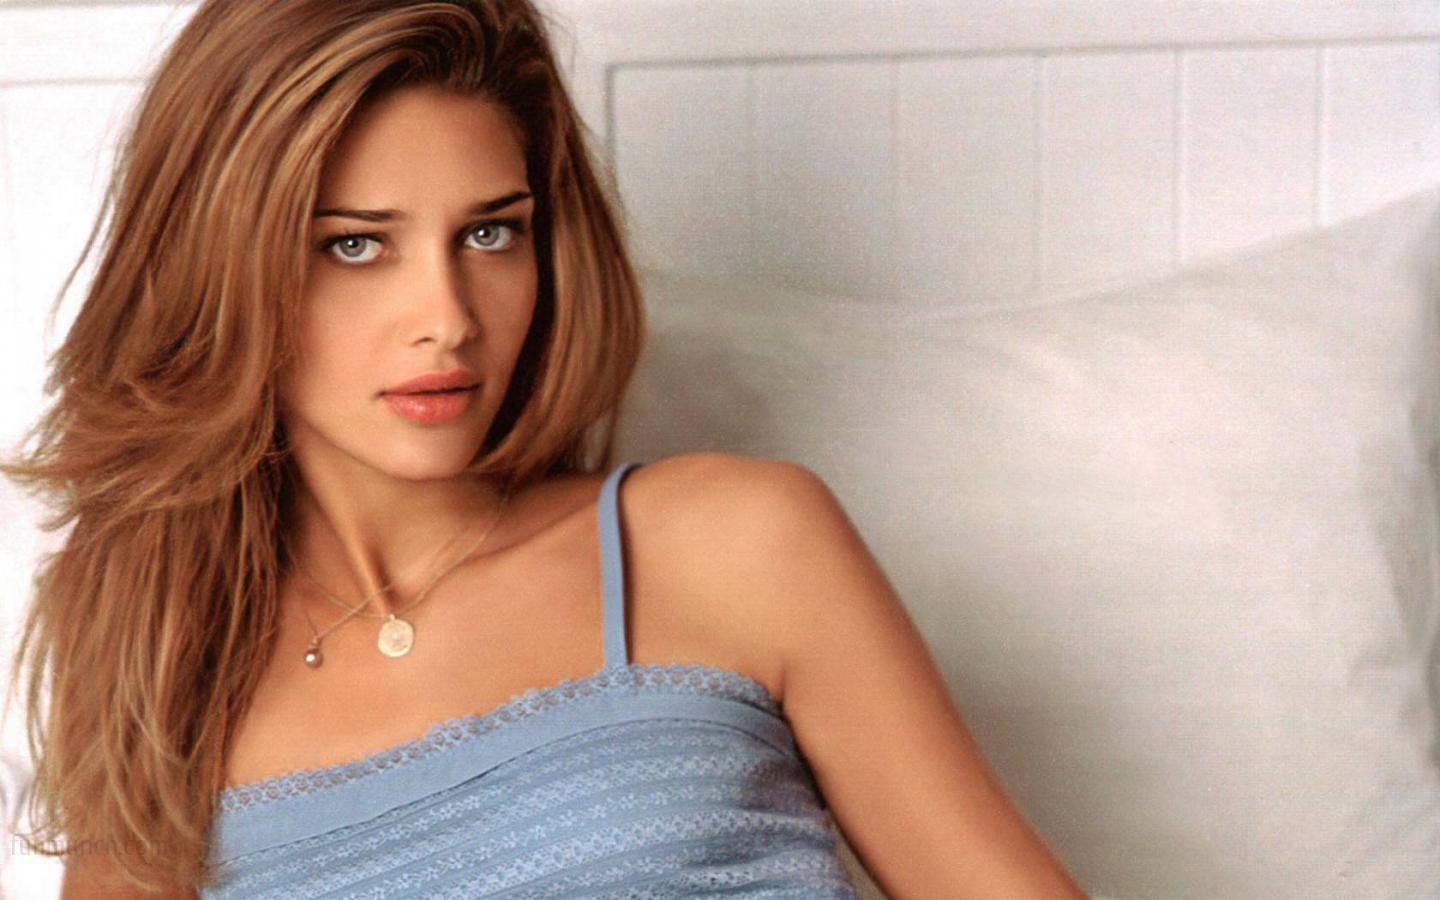 Ana Beatriz Barross Leaked Cell Phone Pictures